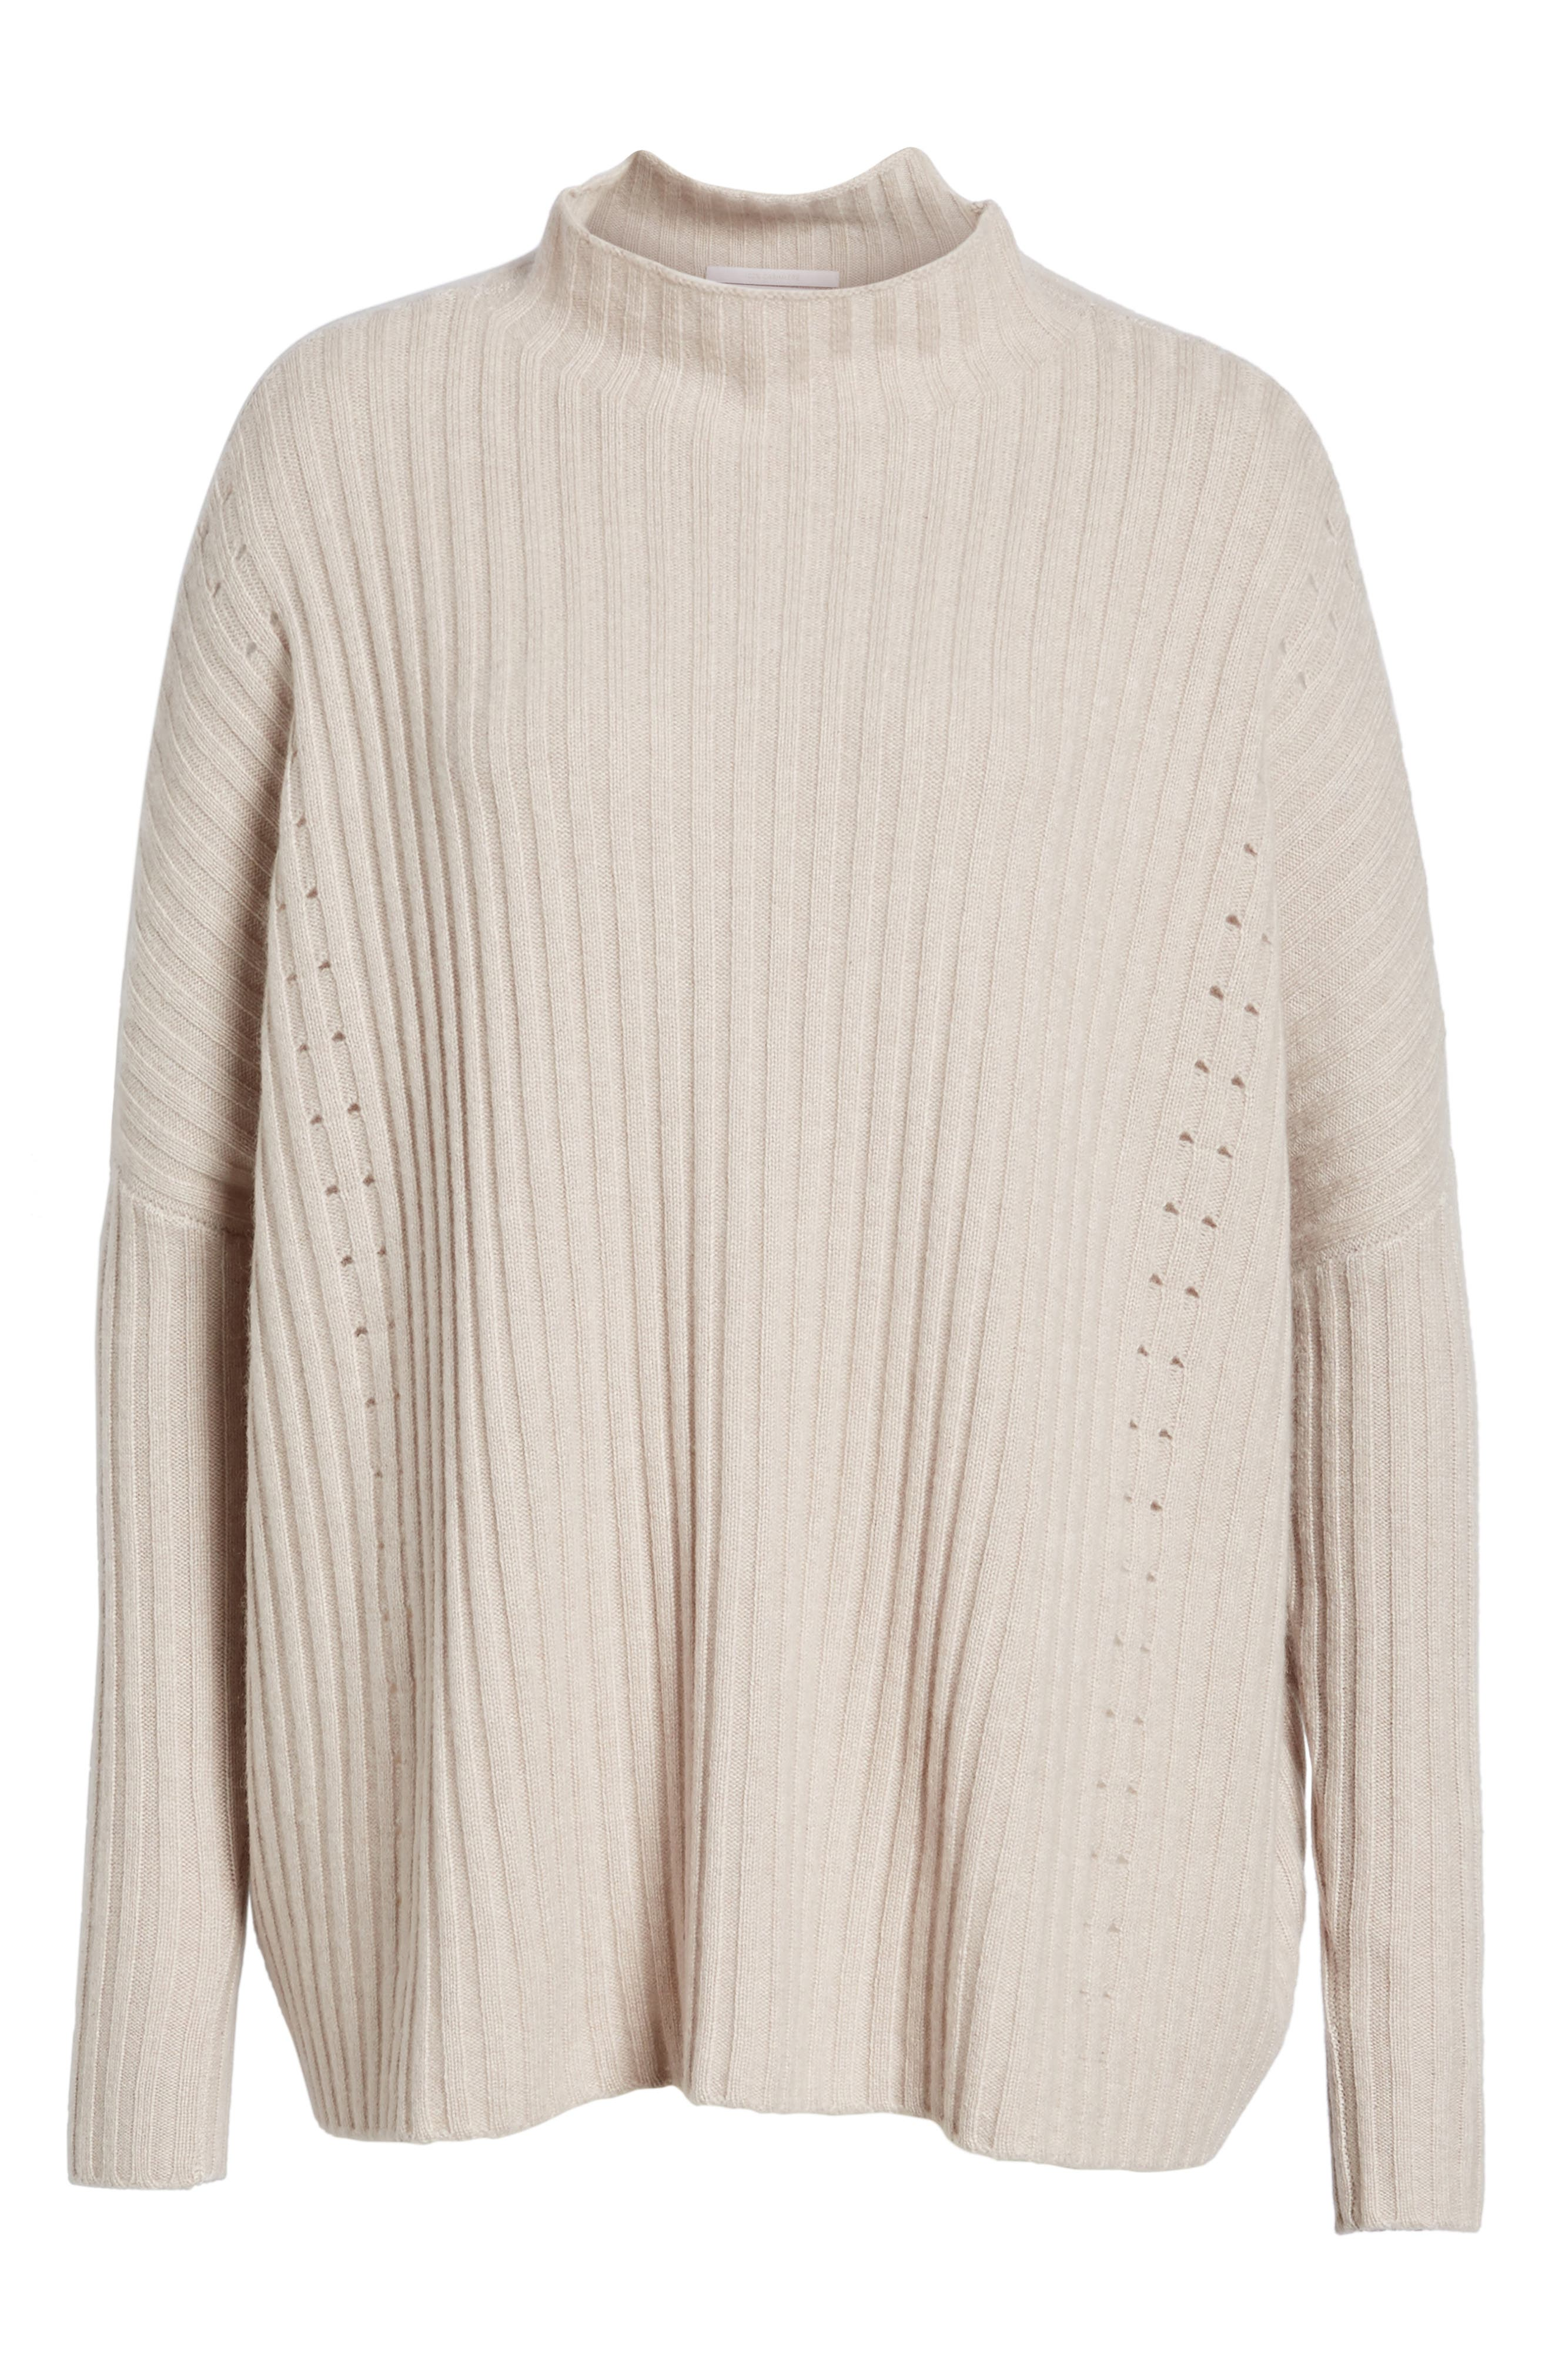 Boxy Ribbed Cashmere Sweater,                             Alternate thumbnail 6, color,                             Beige Pumice Heather